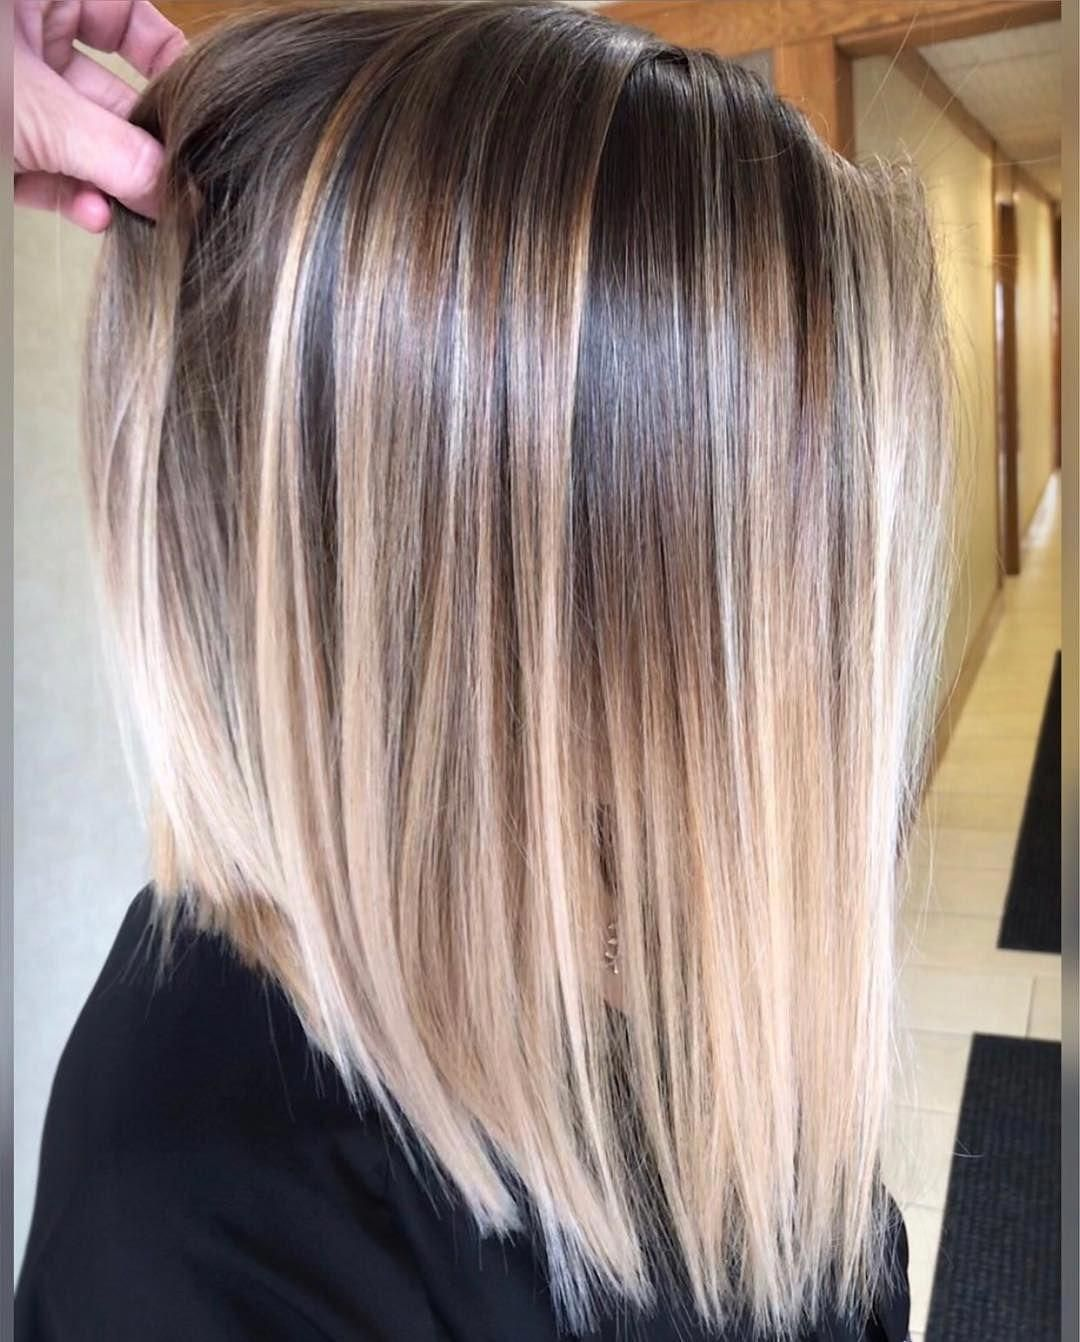 Smooth Balayage By Corynneylon Hair I Mean C Mon Citiesbesthairartists Haircolorbalayage Balayage Straight Hair Short Hair Balayage Hair Styles